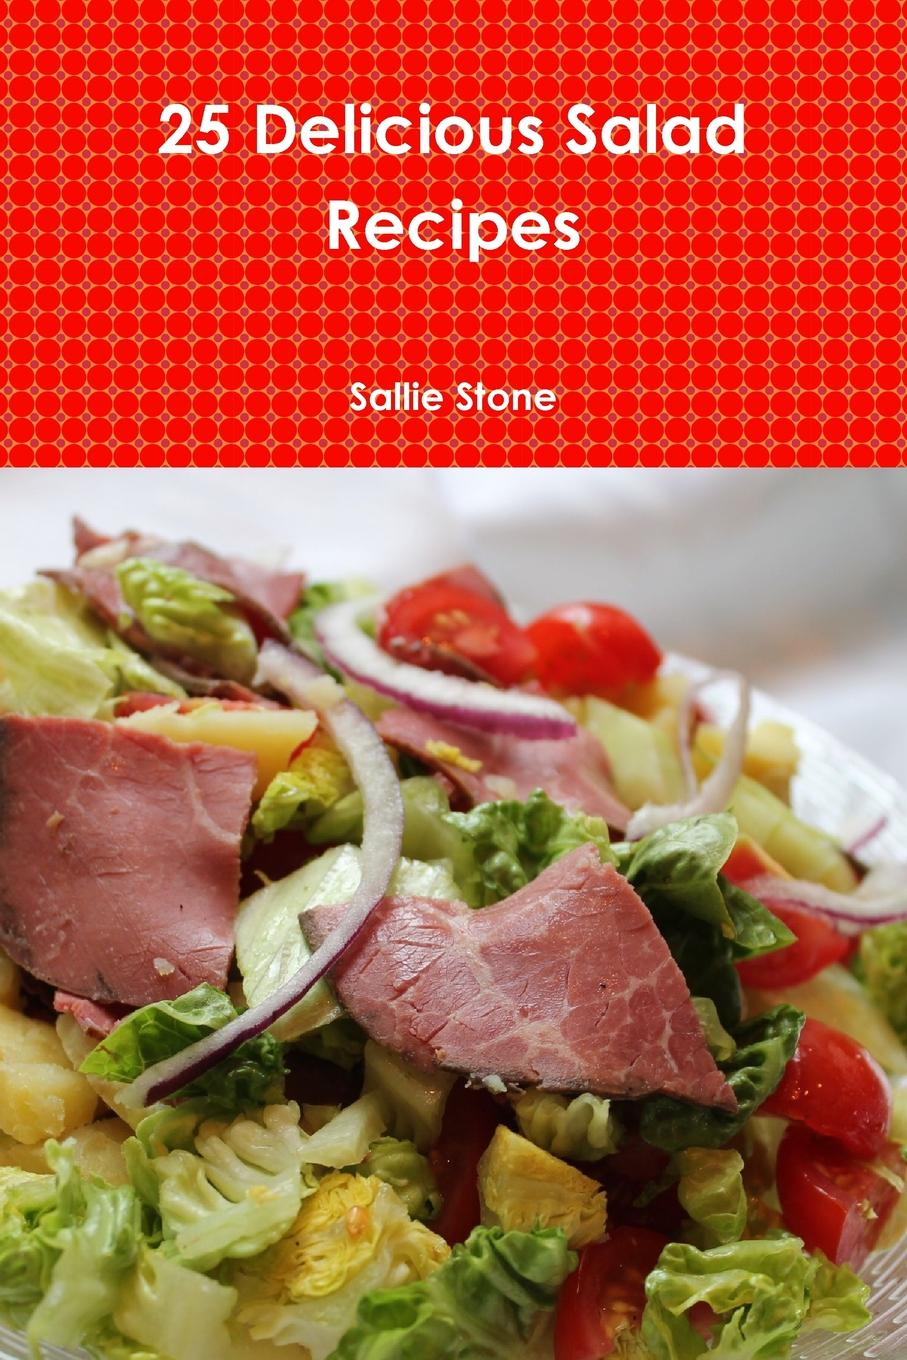 Sallie Stone 25 Delicious Salad Recipes salad love page 5